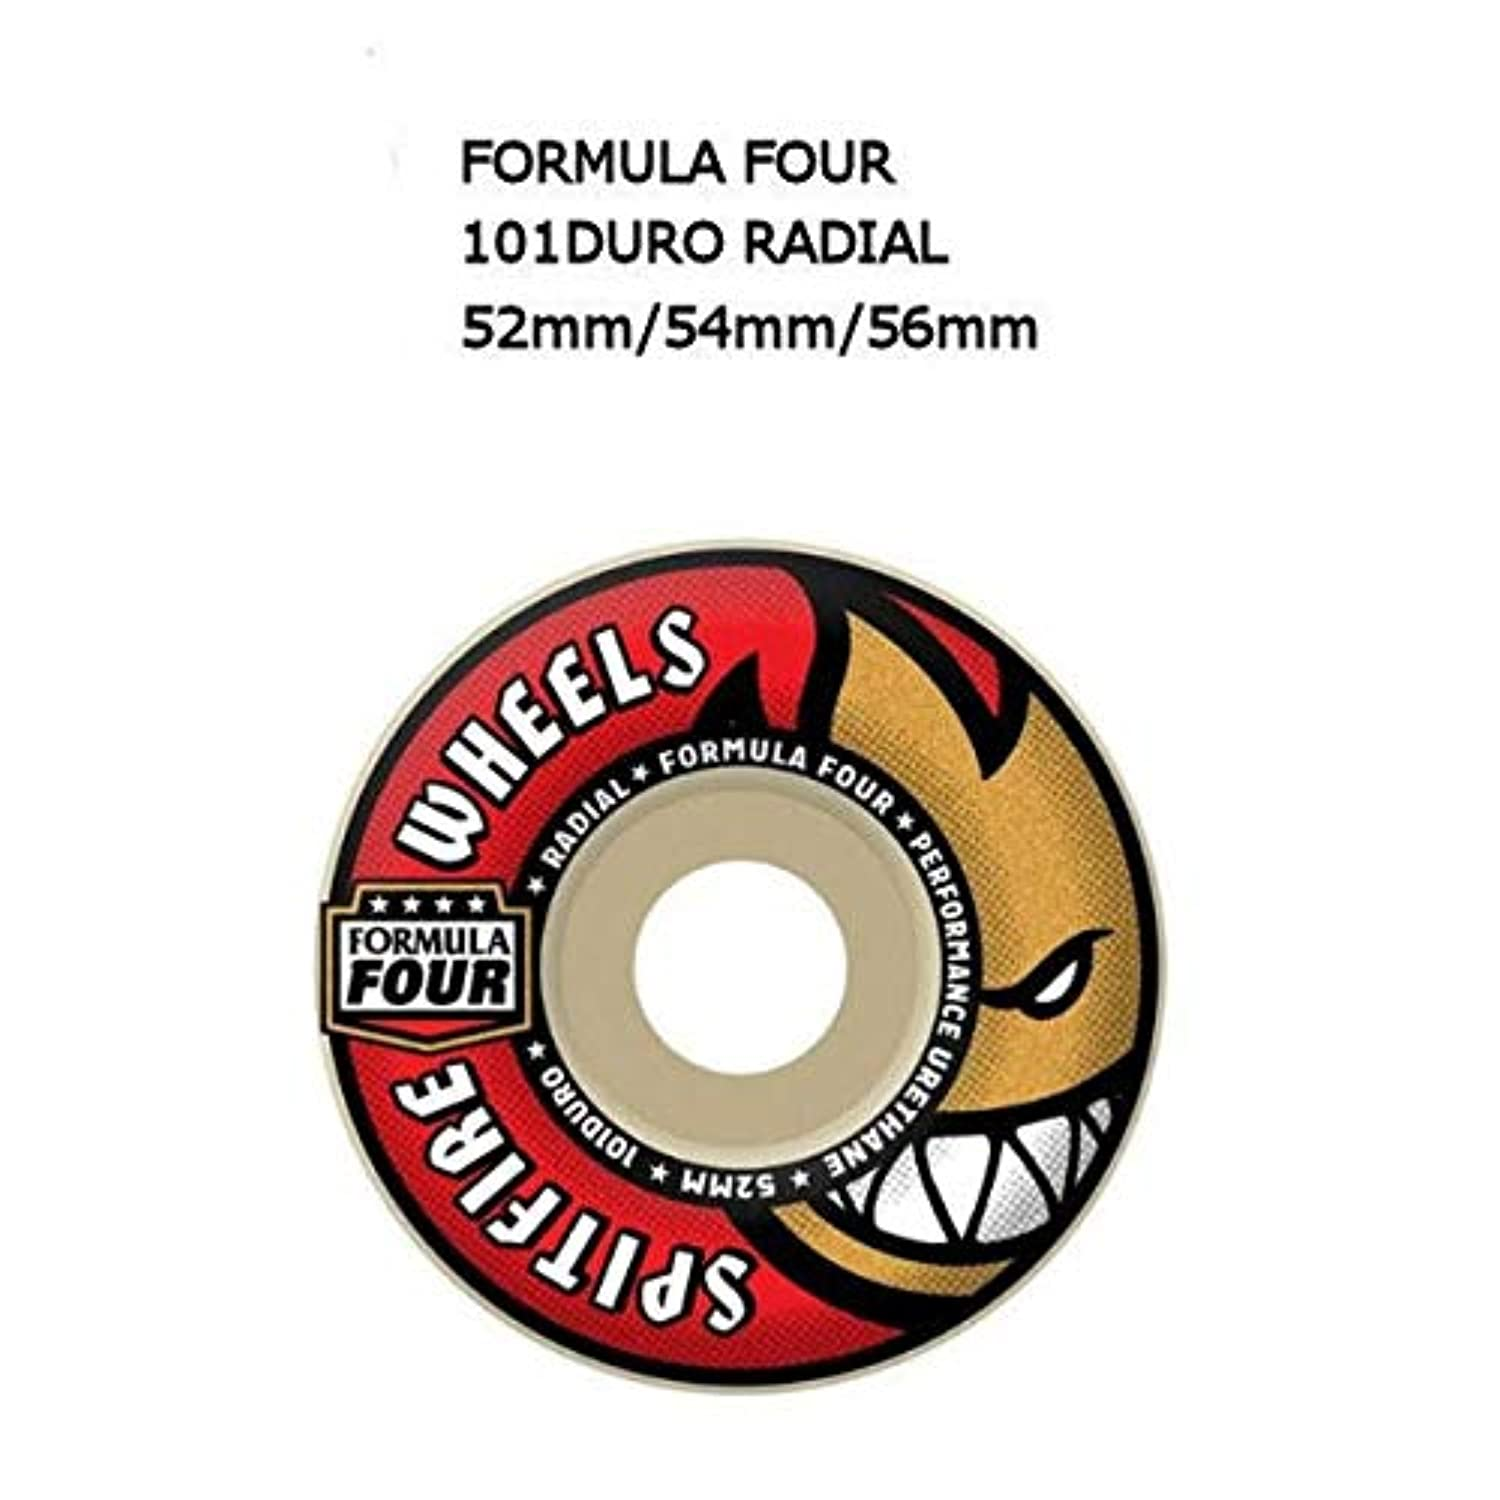 【SPIT FIRE】SPITFIRE WHEELS スピットファイア FORMULA FOUR 101DURO RADIAL ウィール スケートボード